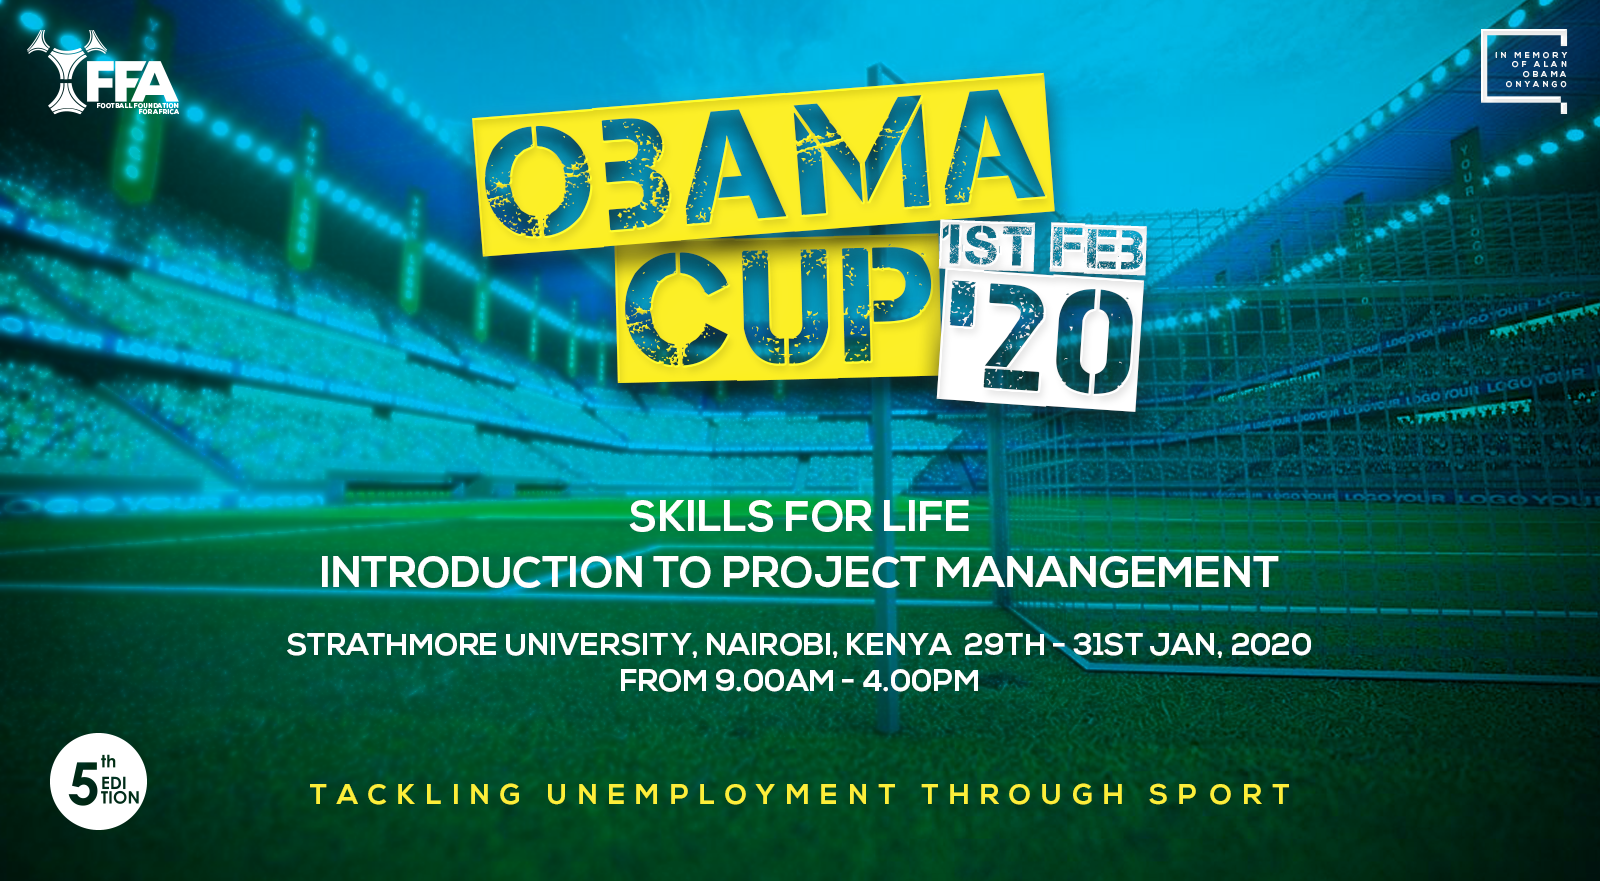 Obama Cup 2020 Skills for Life Workshop